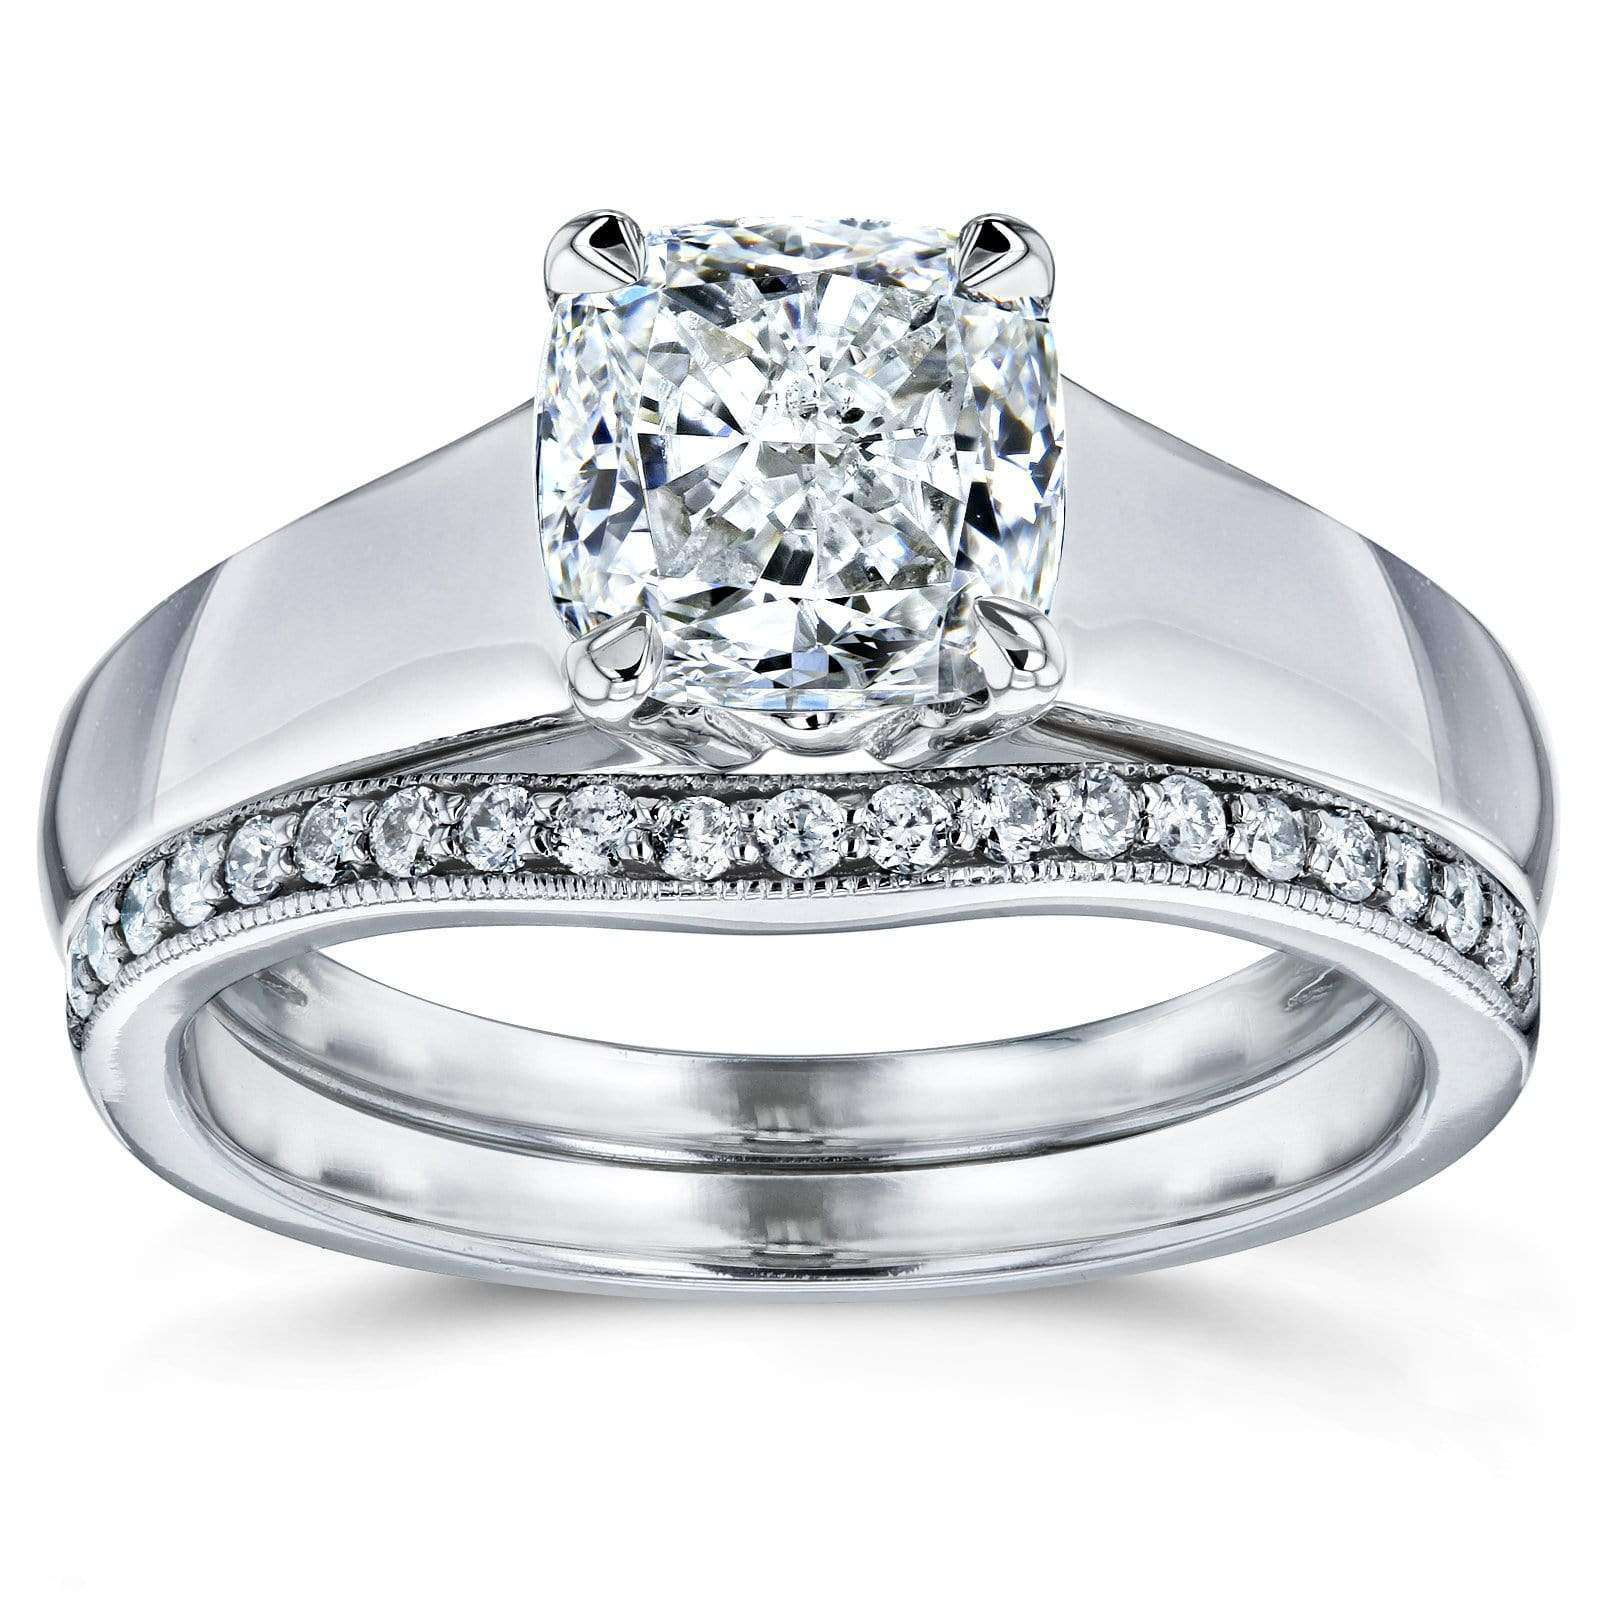 Discounts Cushion Diamond Solitaire and Wedding Band Bridal Set 1 1/6 CTW in 14k White Gold - 7.5